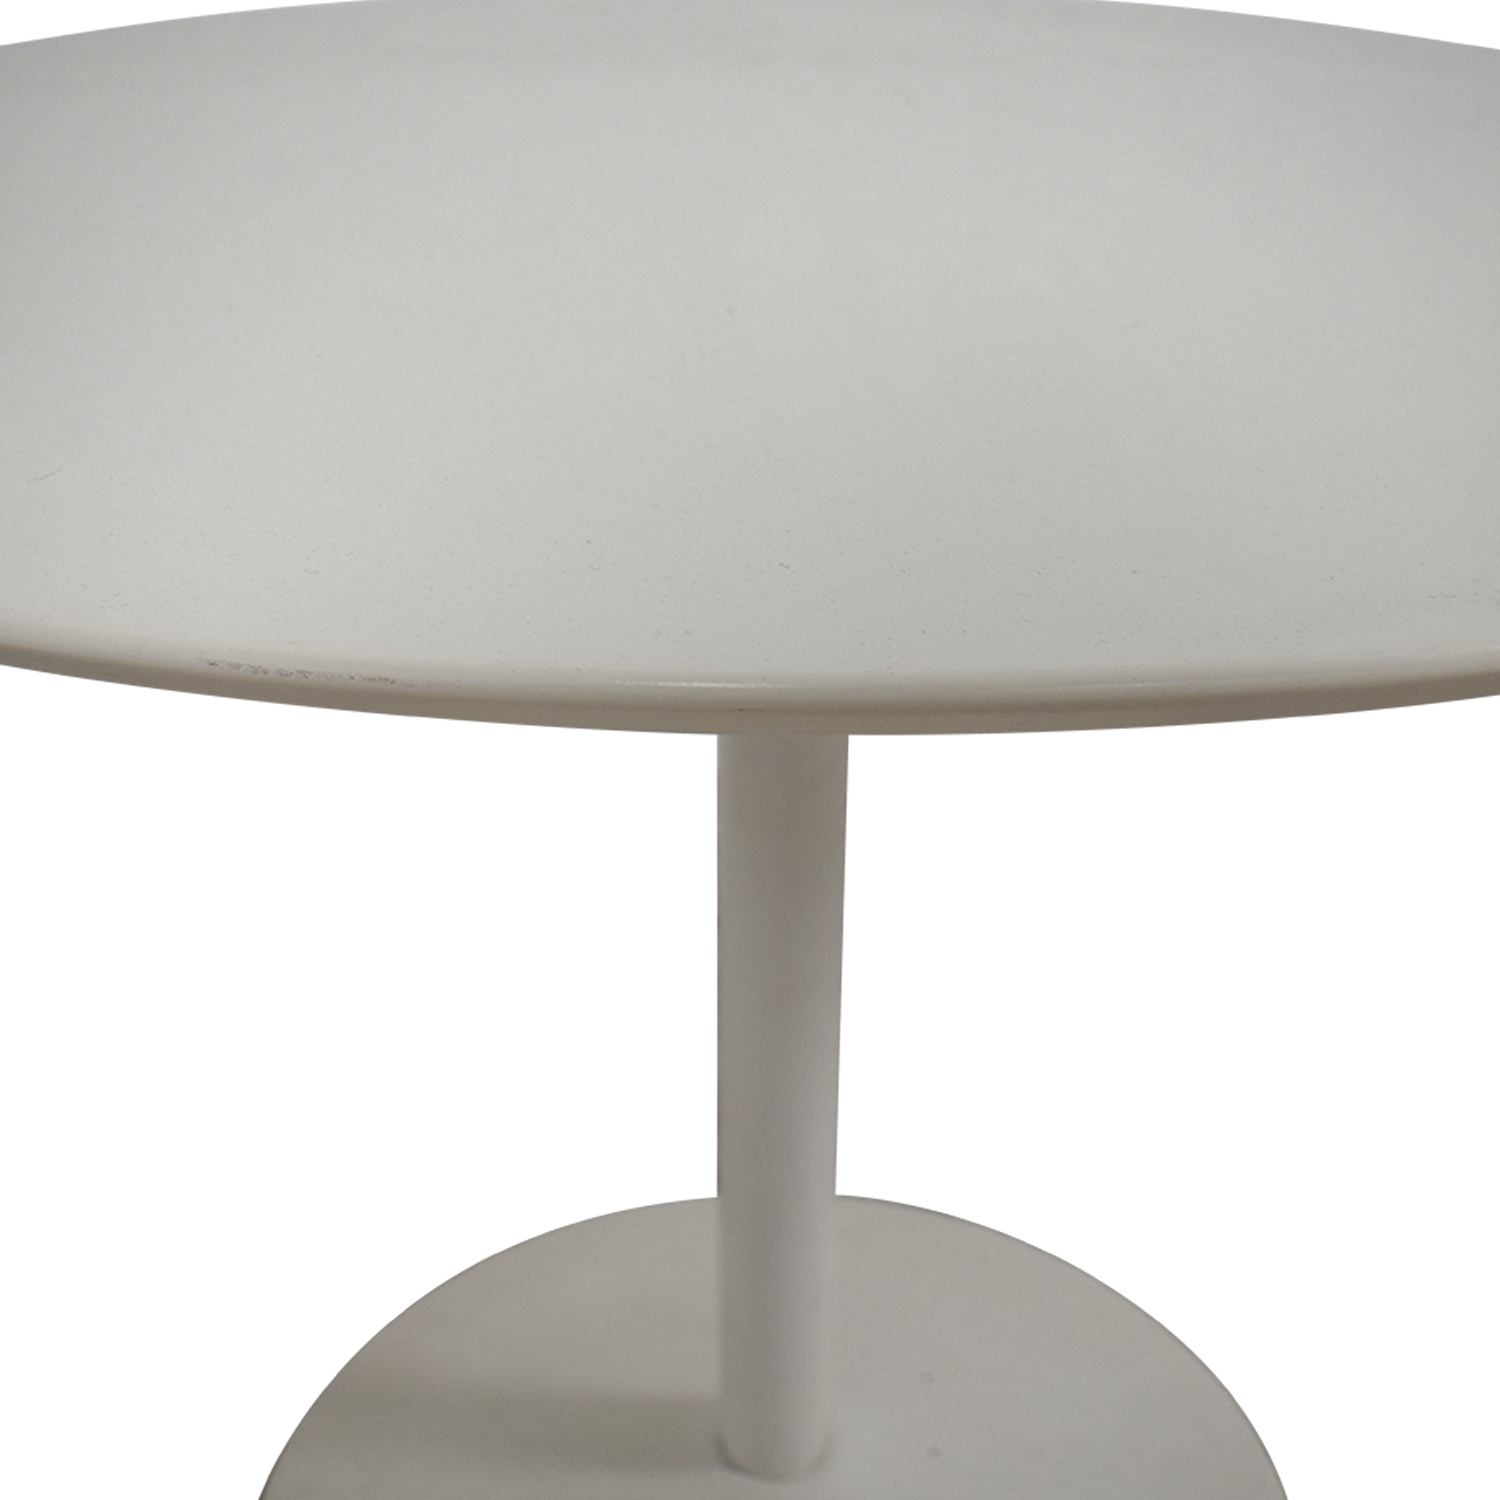 OFF CB CB Odyssey White Tulip Dining Table Tables - Cb2 tulip table